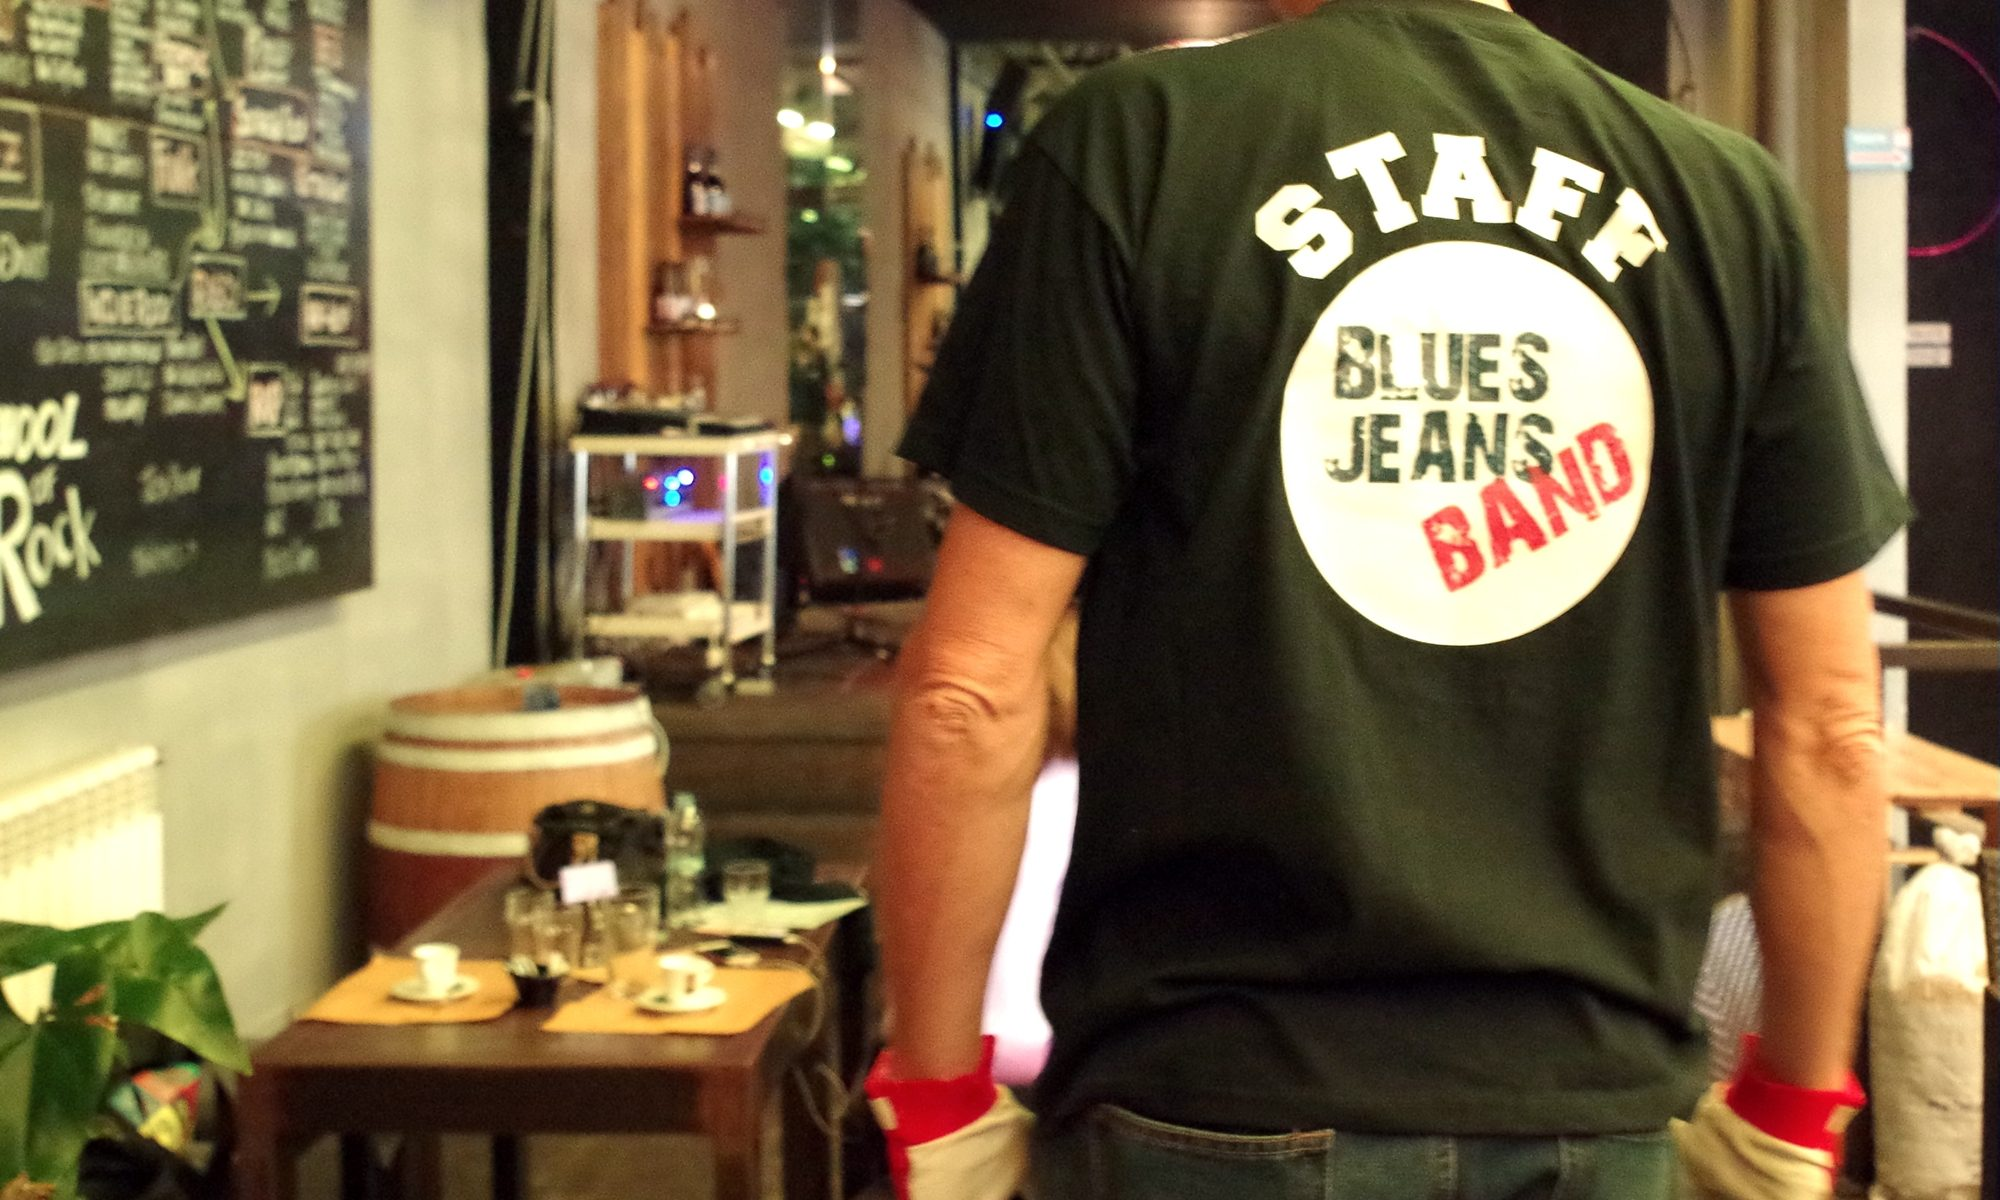 Blues Jeans Band